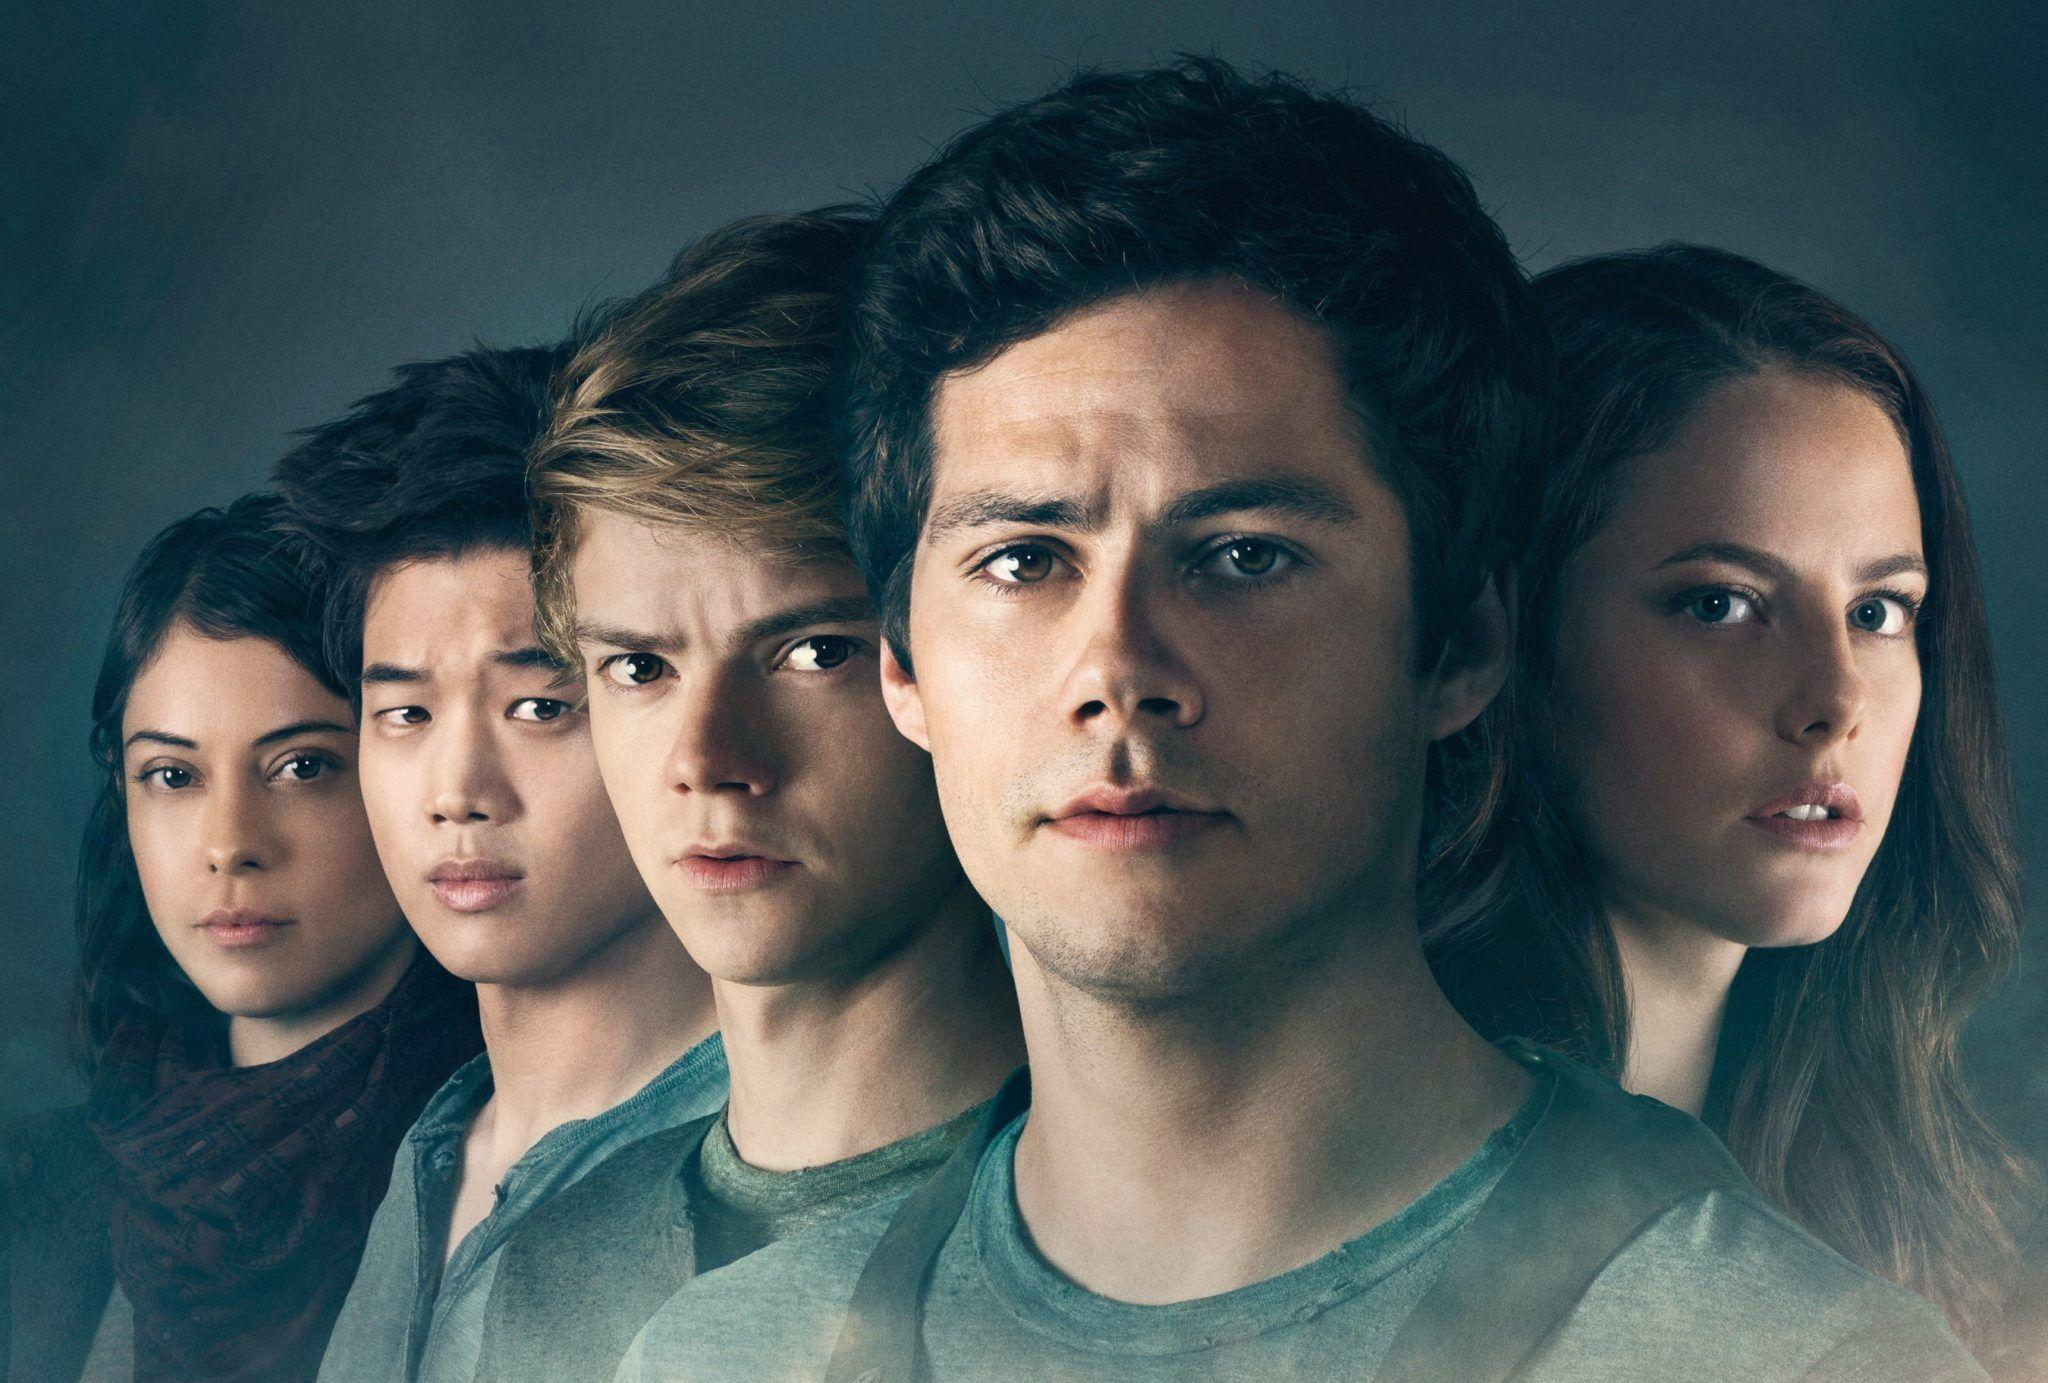 The Maze Runner: The Death Cure Wallpapers - Wallpaper Cave